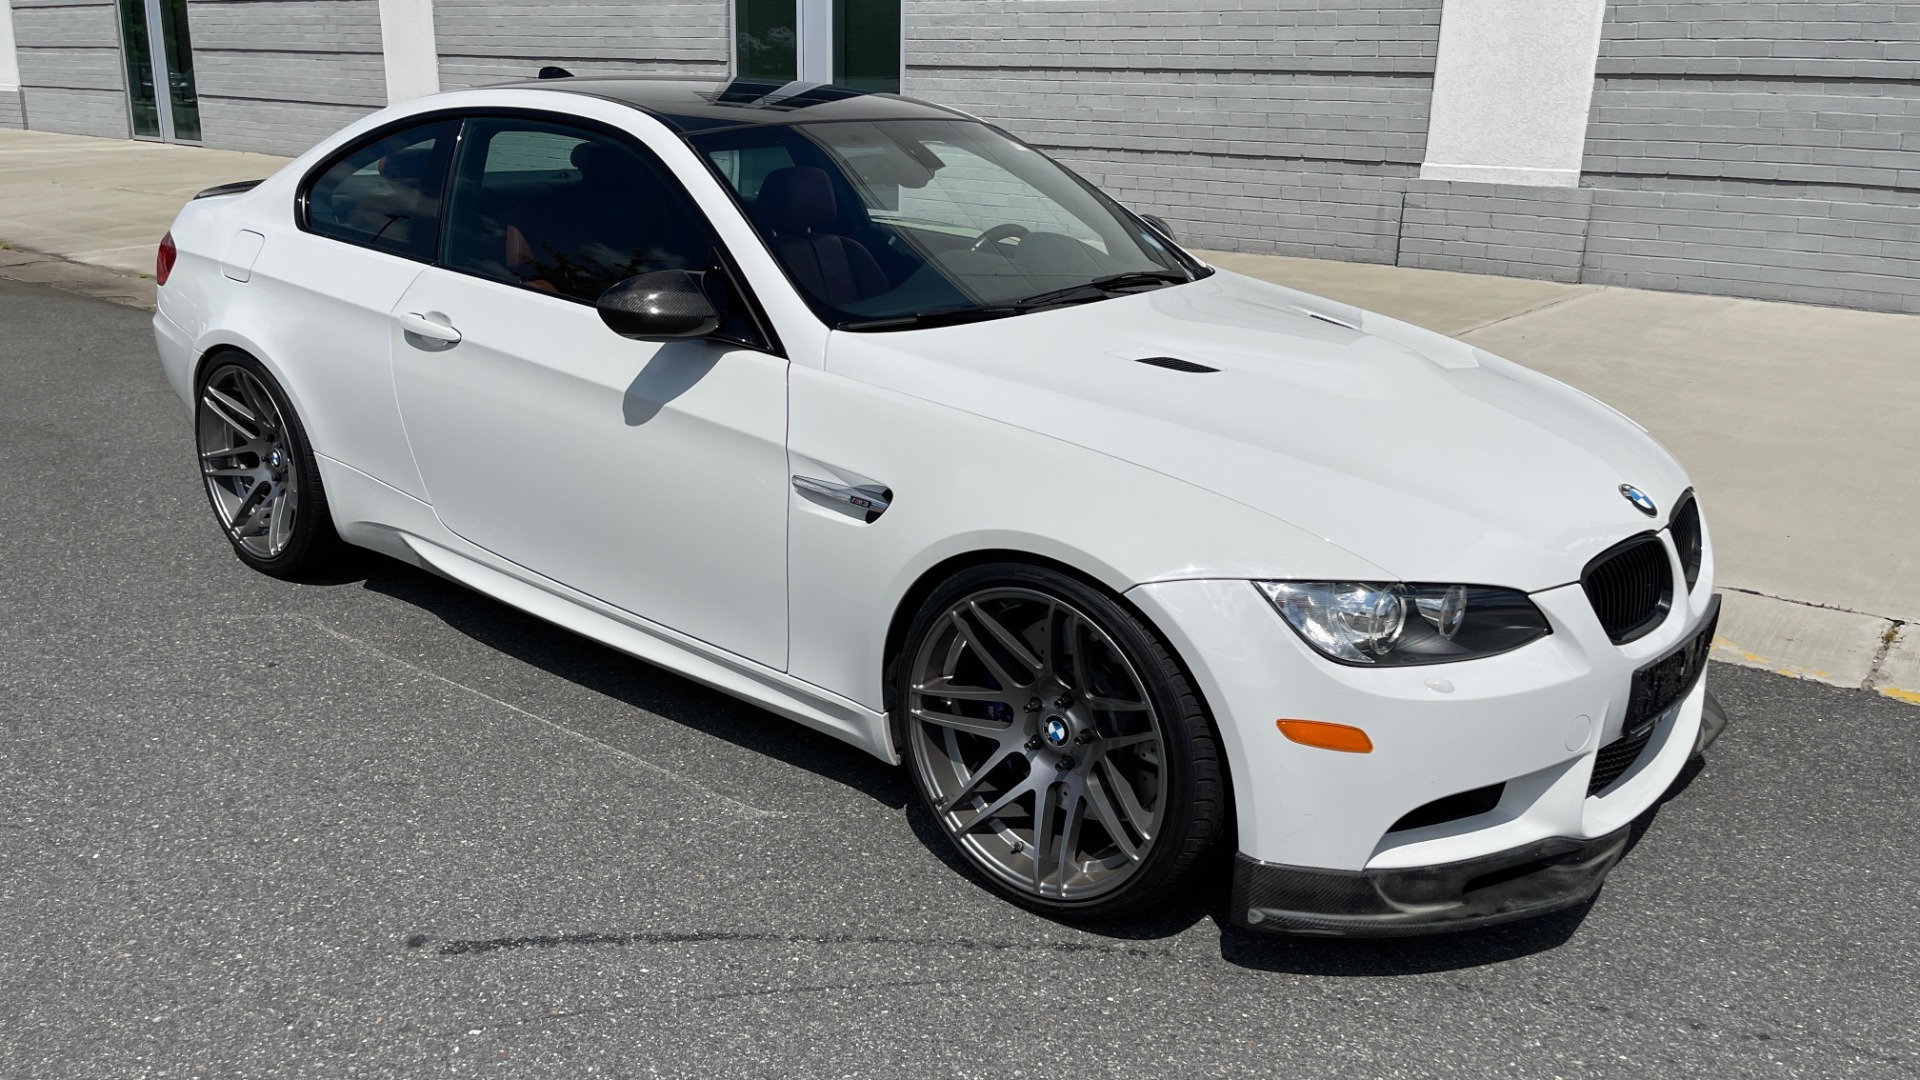 Used 2011 BMW M3 PREMIUM COUPE / CLD WTHR / TECH / SMARTPHONEINT / PARK ASST for sale Sold at Formula Imports in Charlotte NC 28227 6